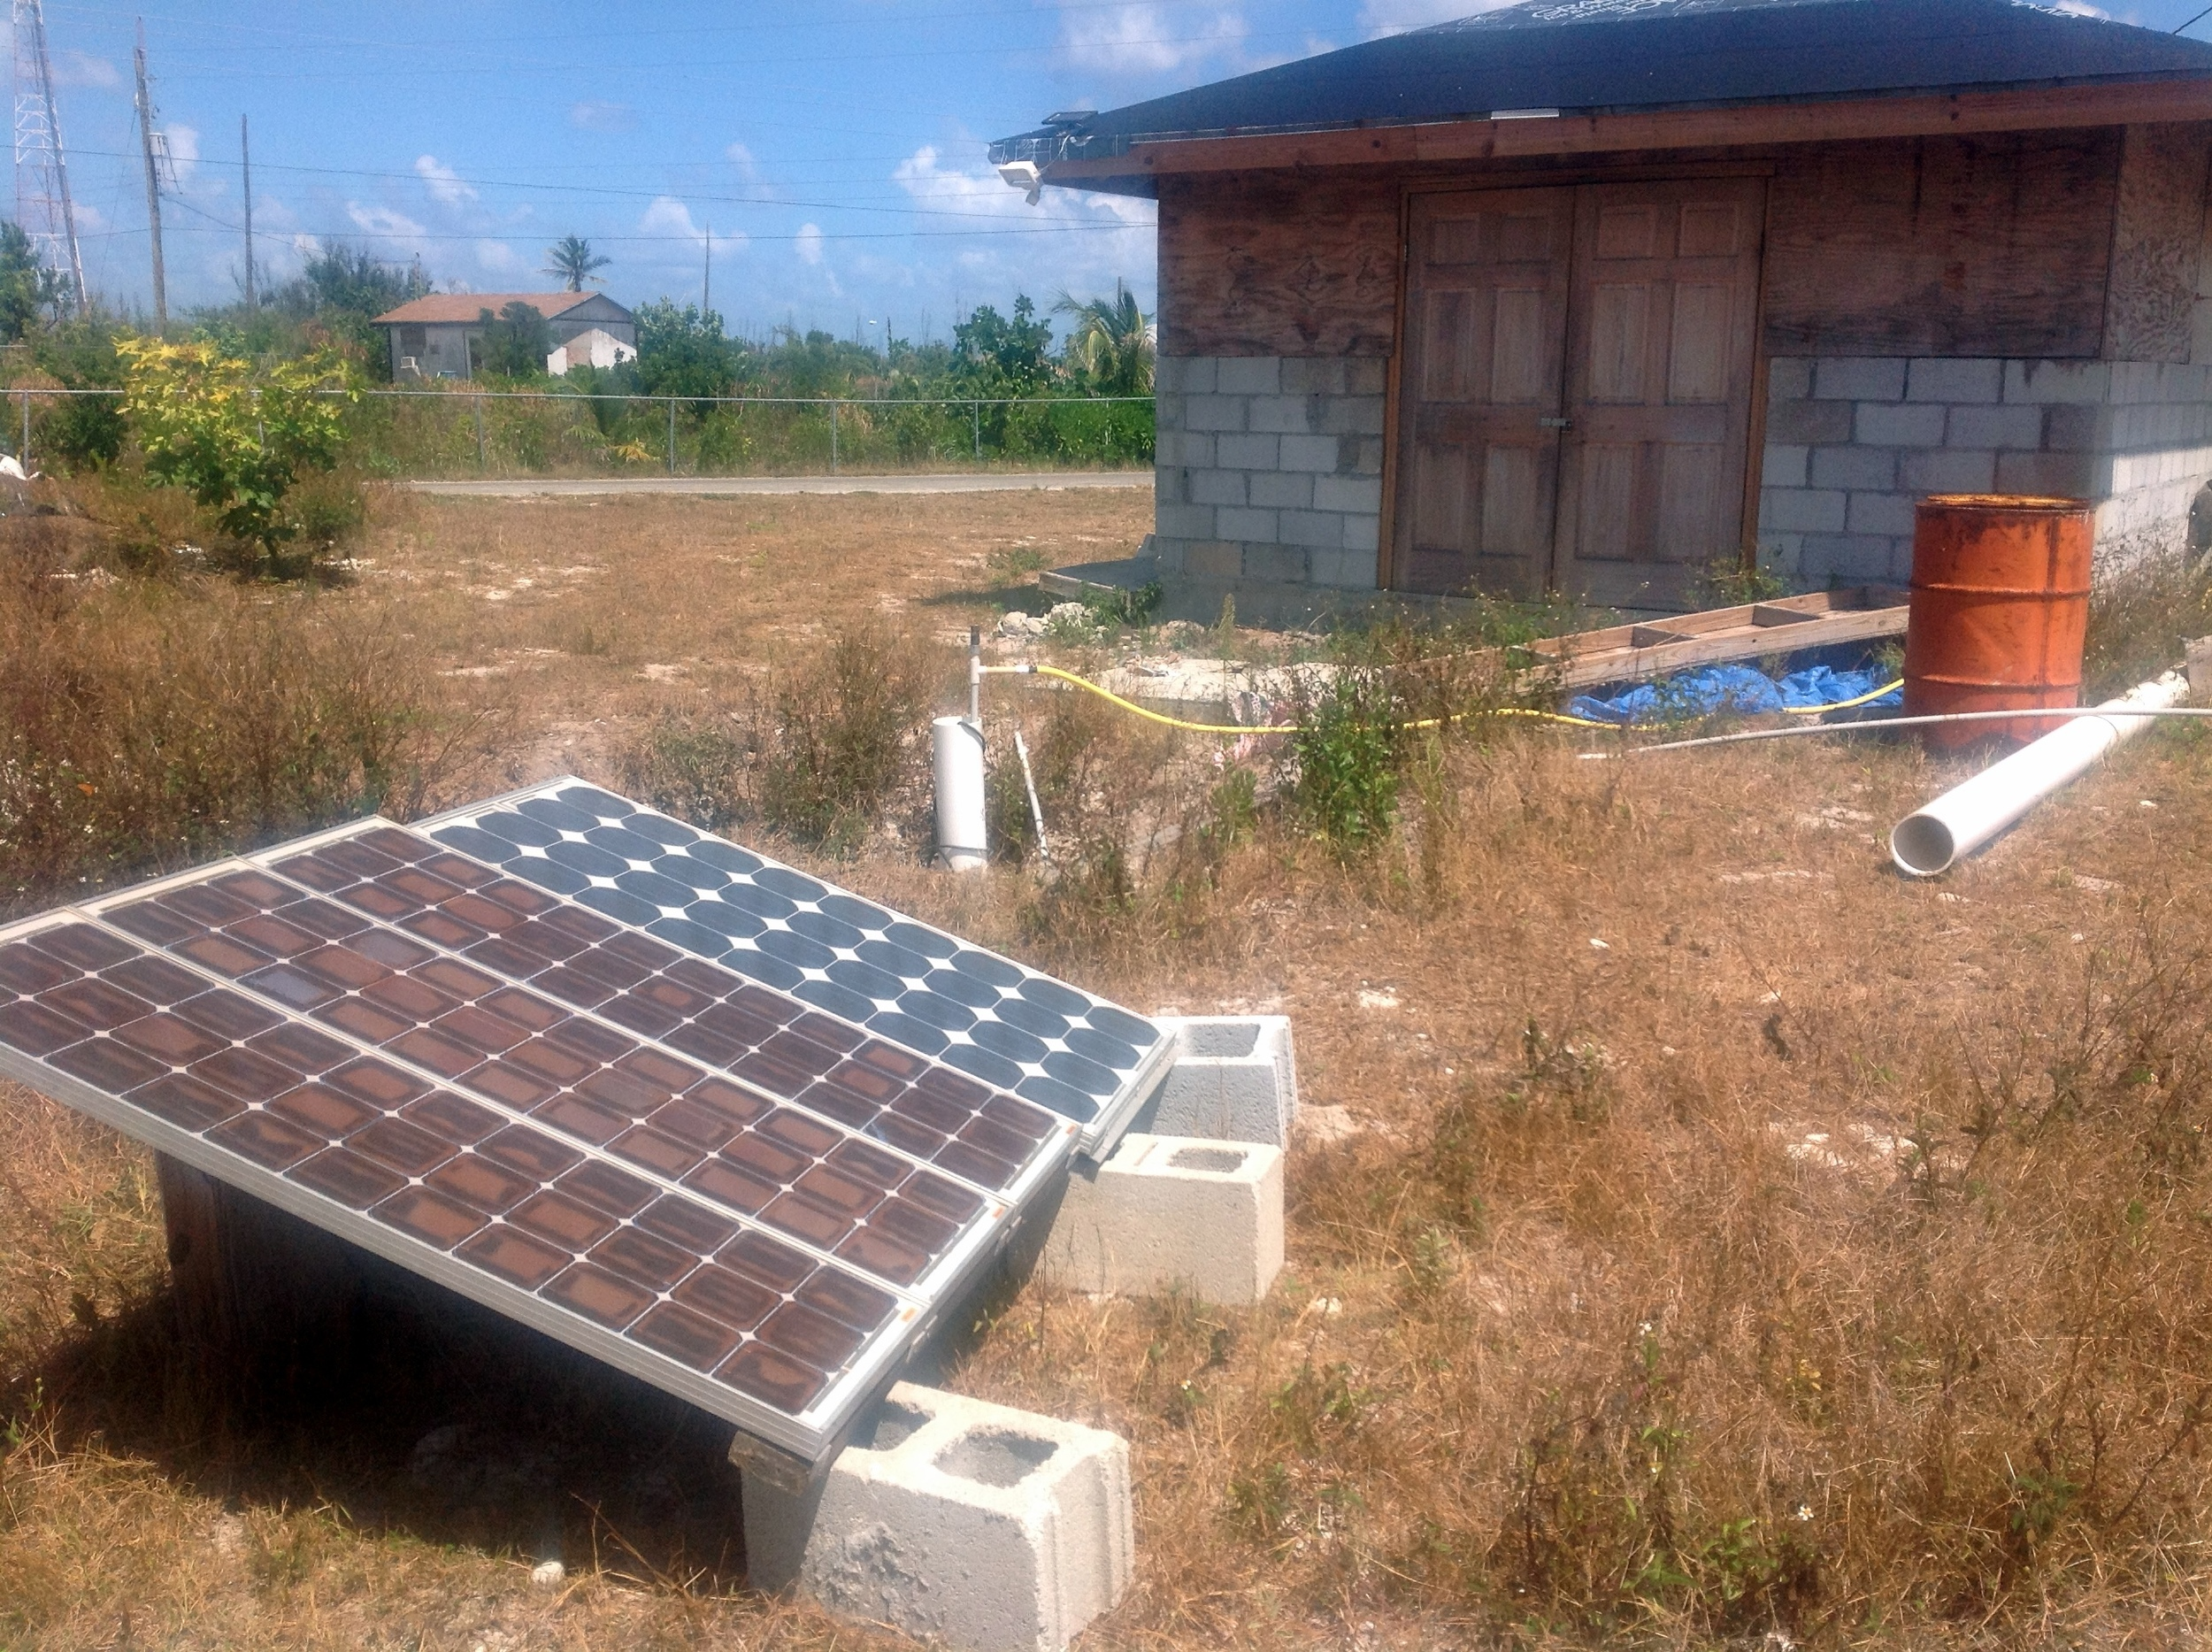 Solar panels power the water filtration system